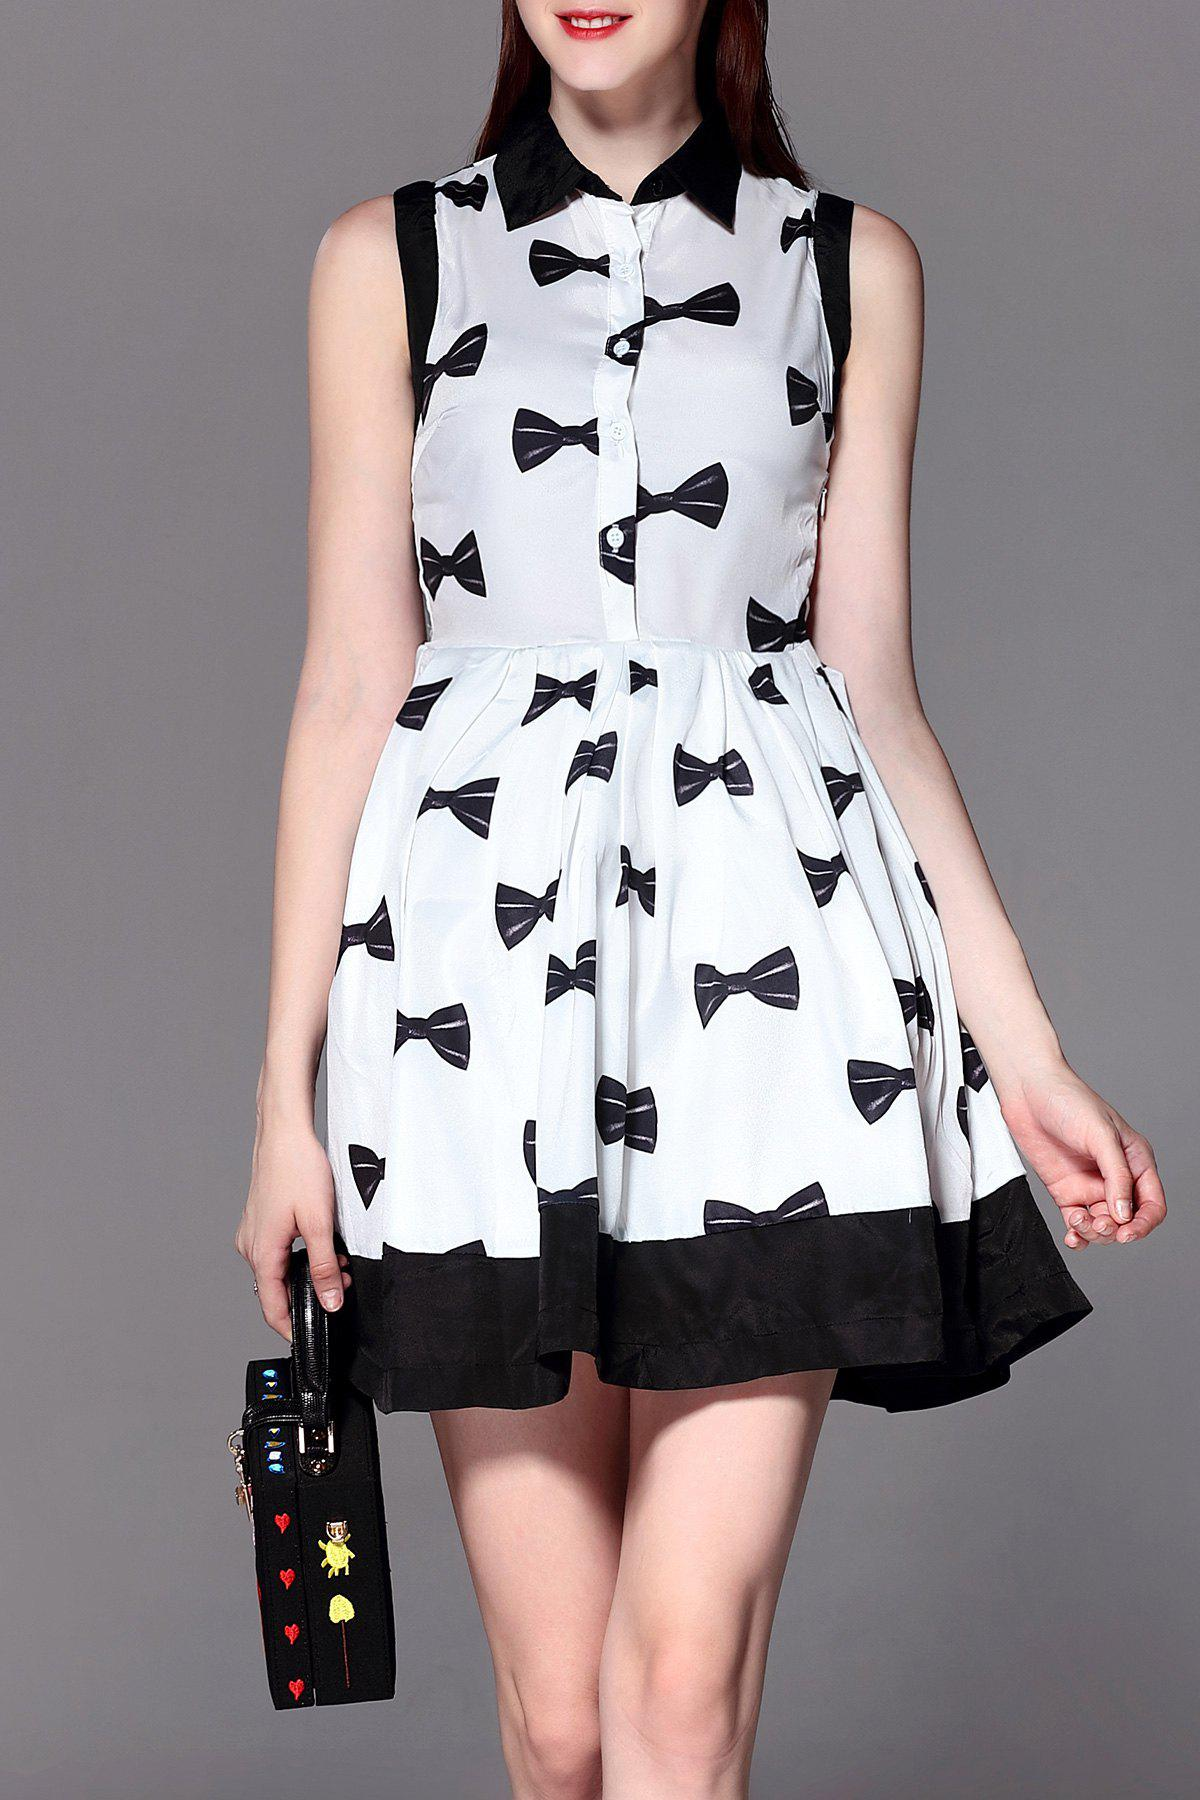 Bowknot Print Flare Dress - WHITE L